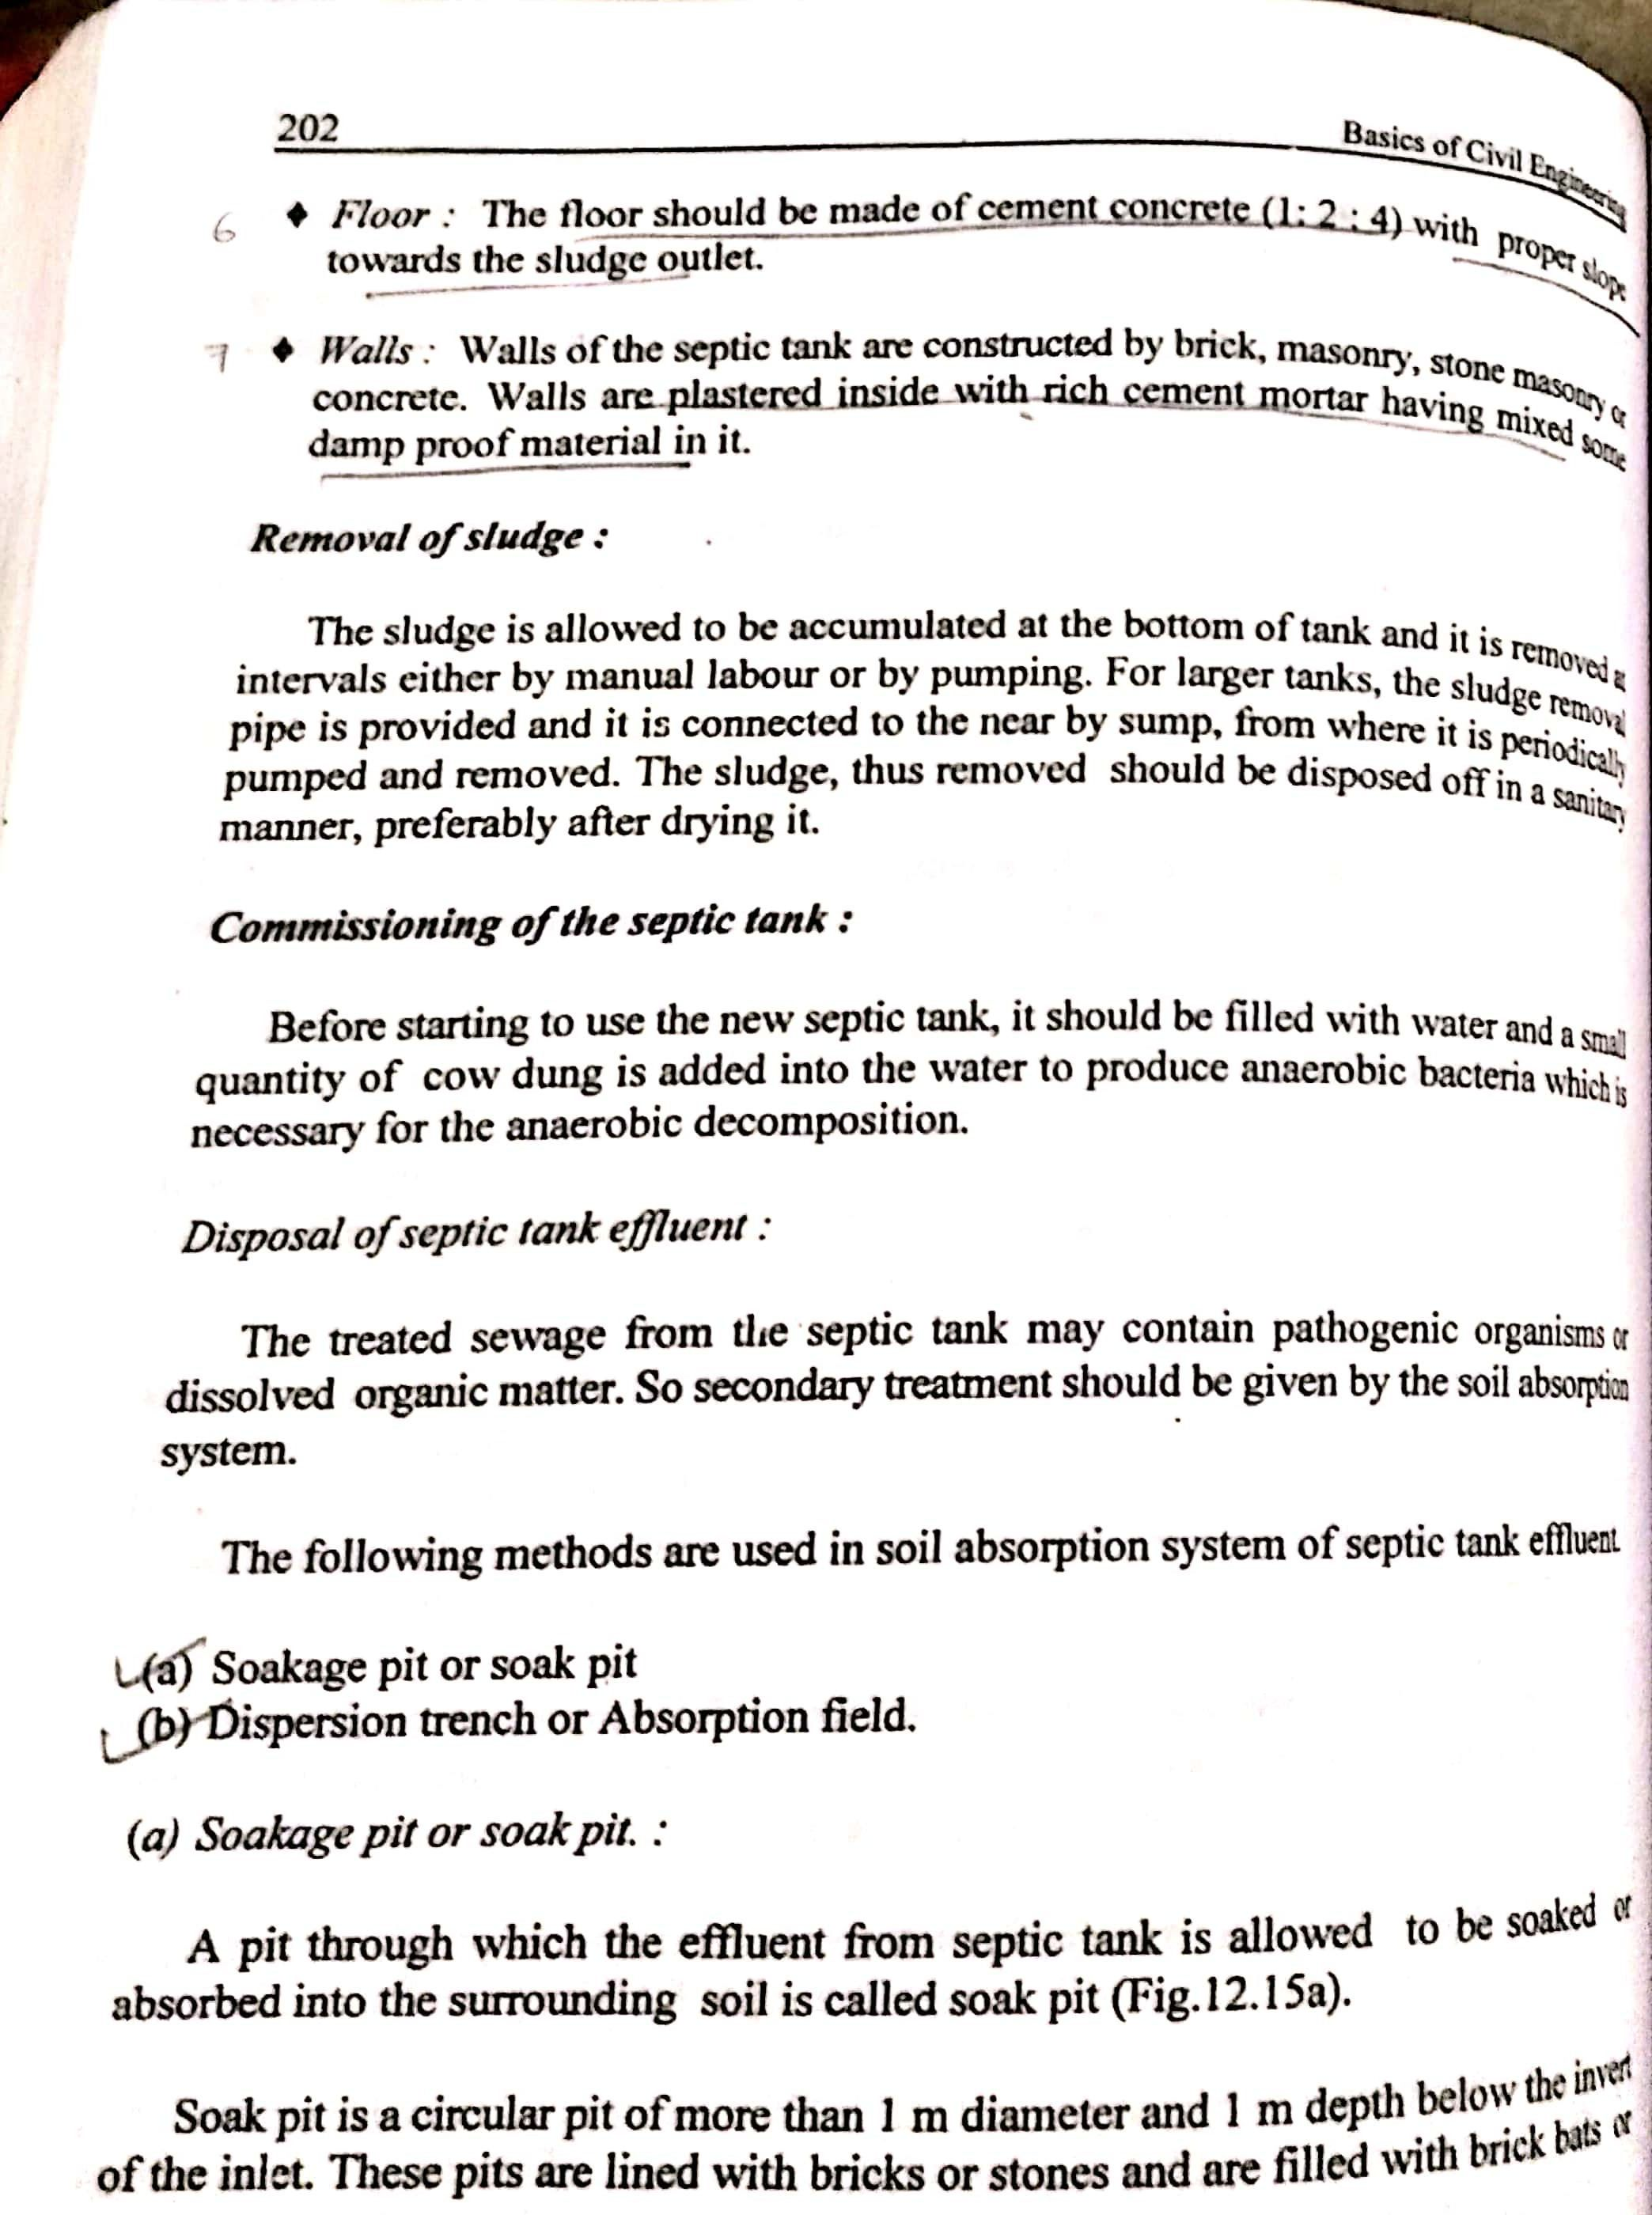 Removal of Sludge and commissioning of the septic tank -New Doc 2019-11-30 20.41.41_94.jpg